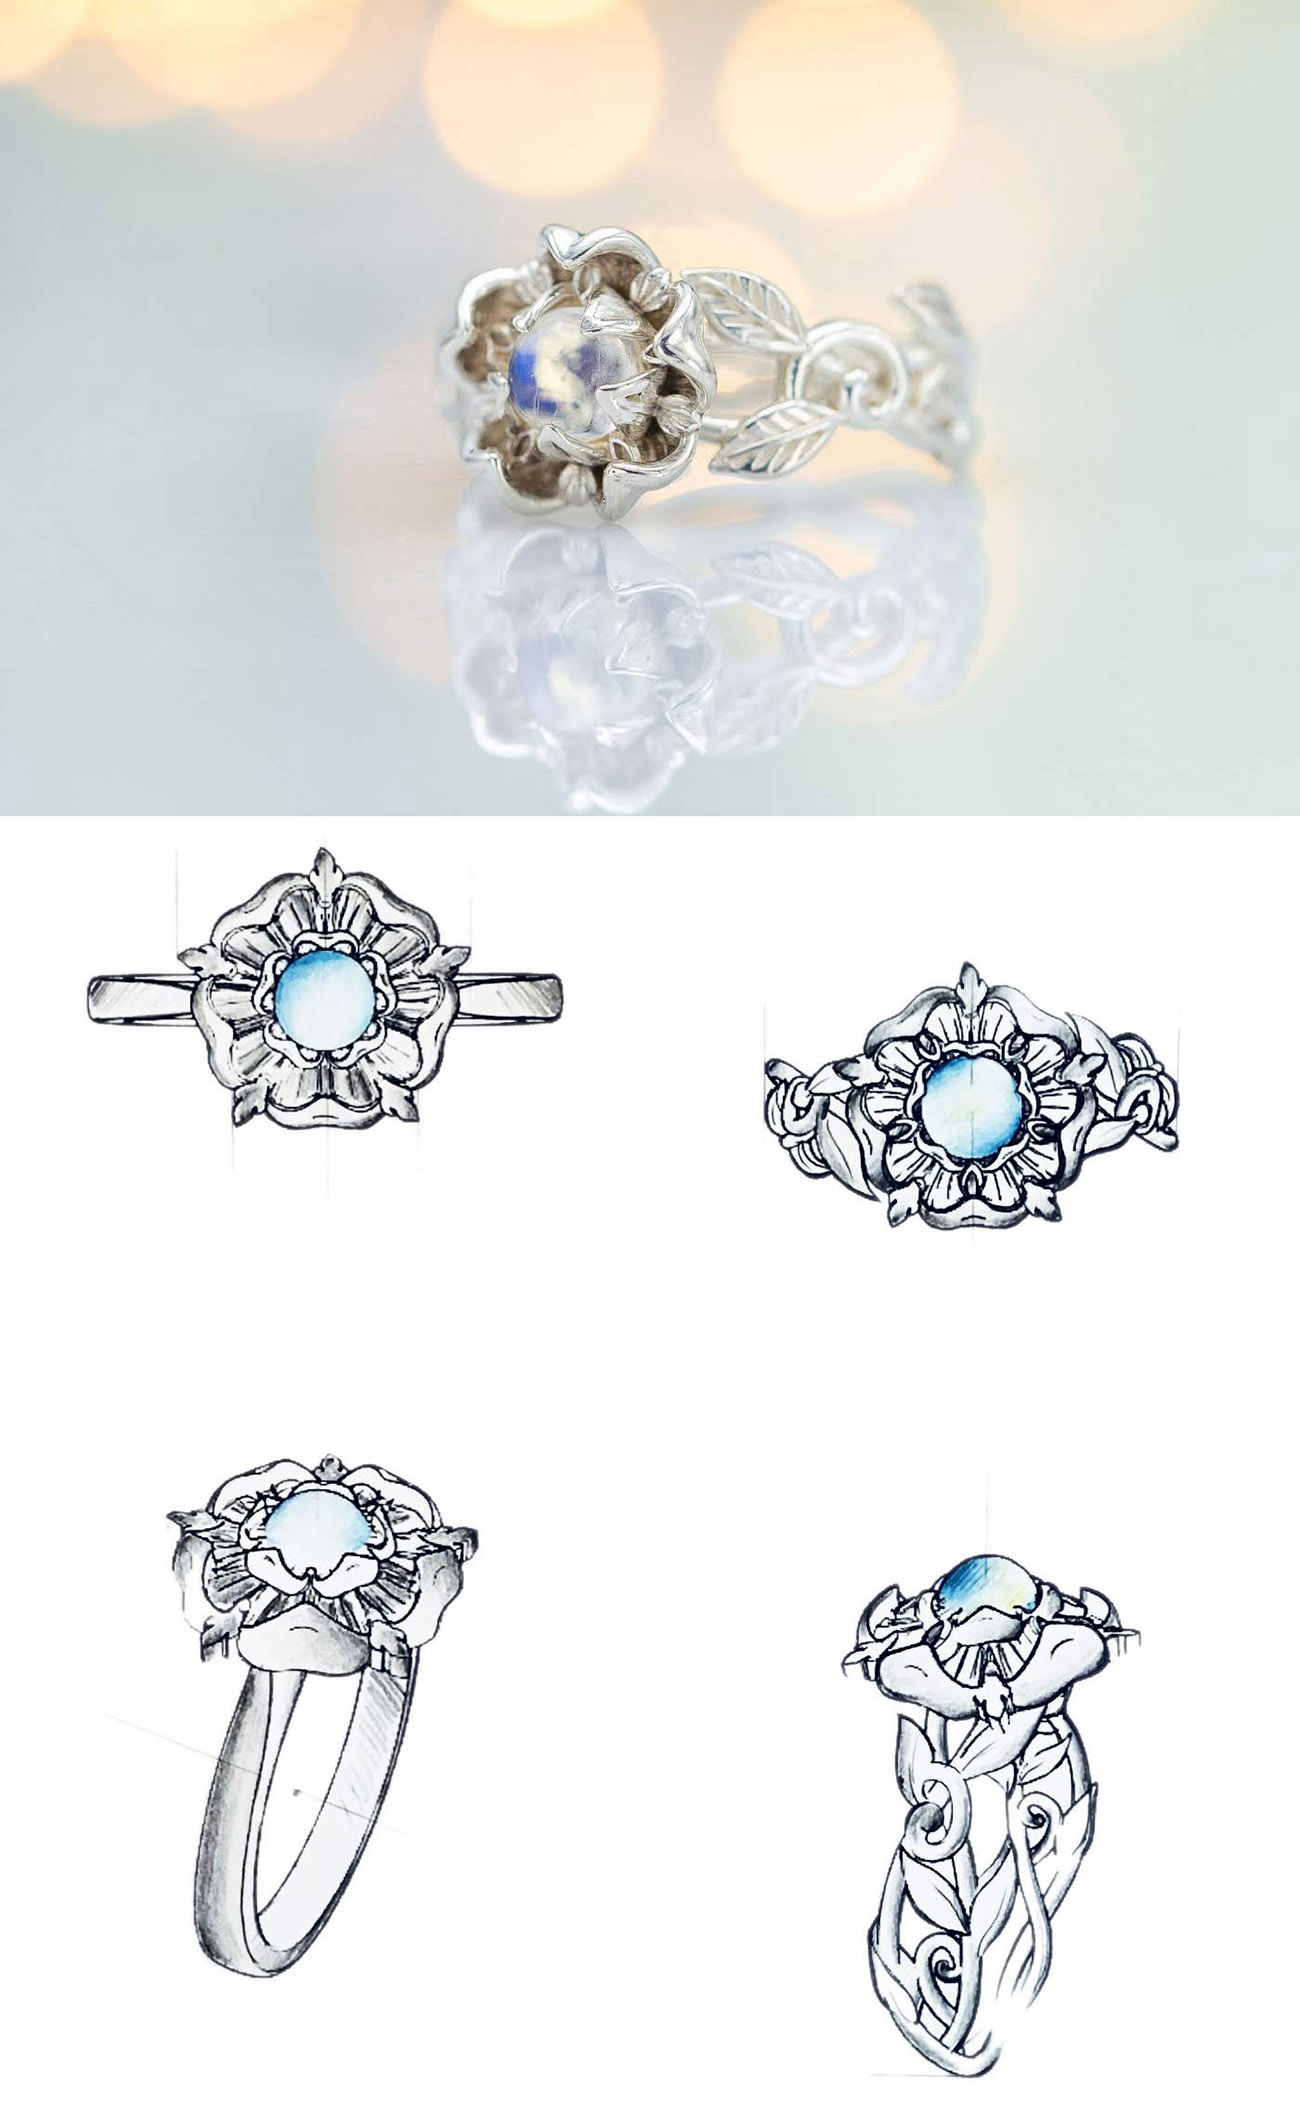 CustomMade engagement ring inspired by Tudor heritage